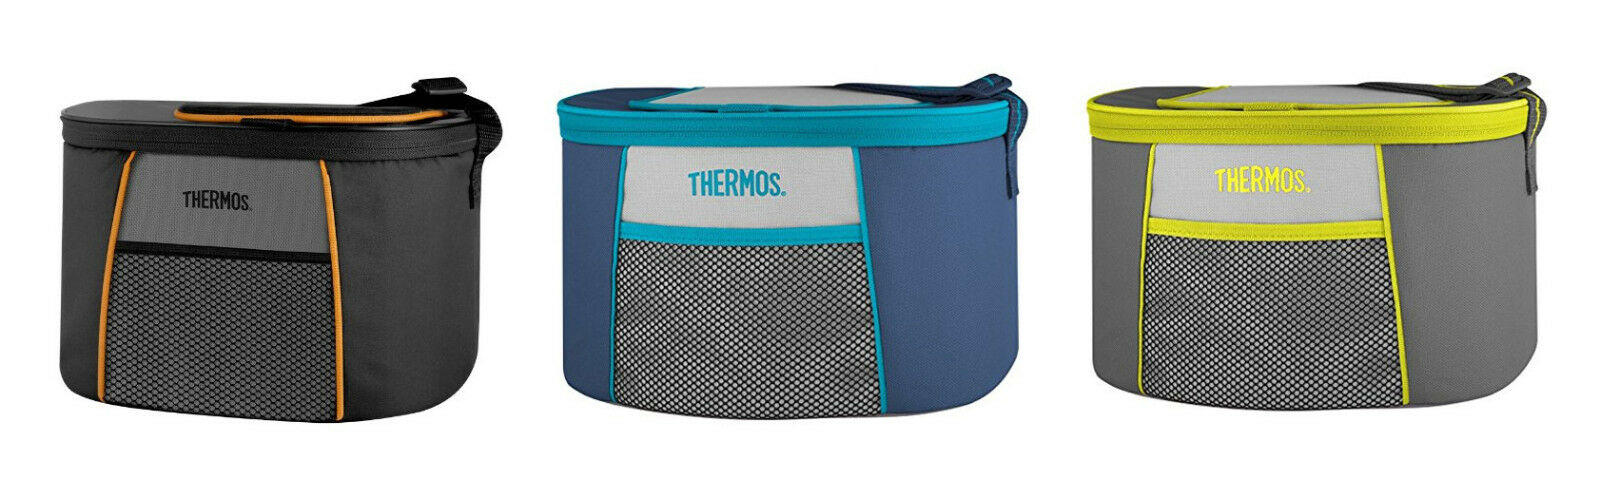 Thermos Element 5 Cooler ~ Thermos element can coolers sizes ebay